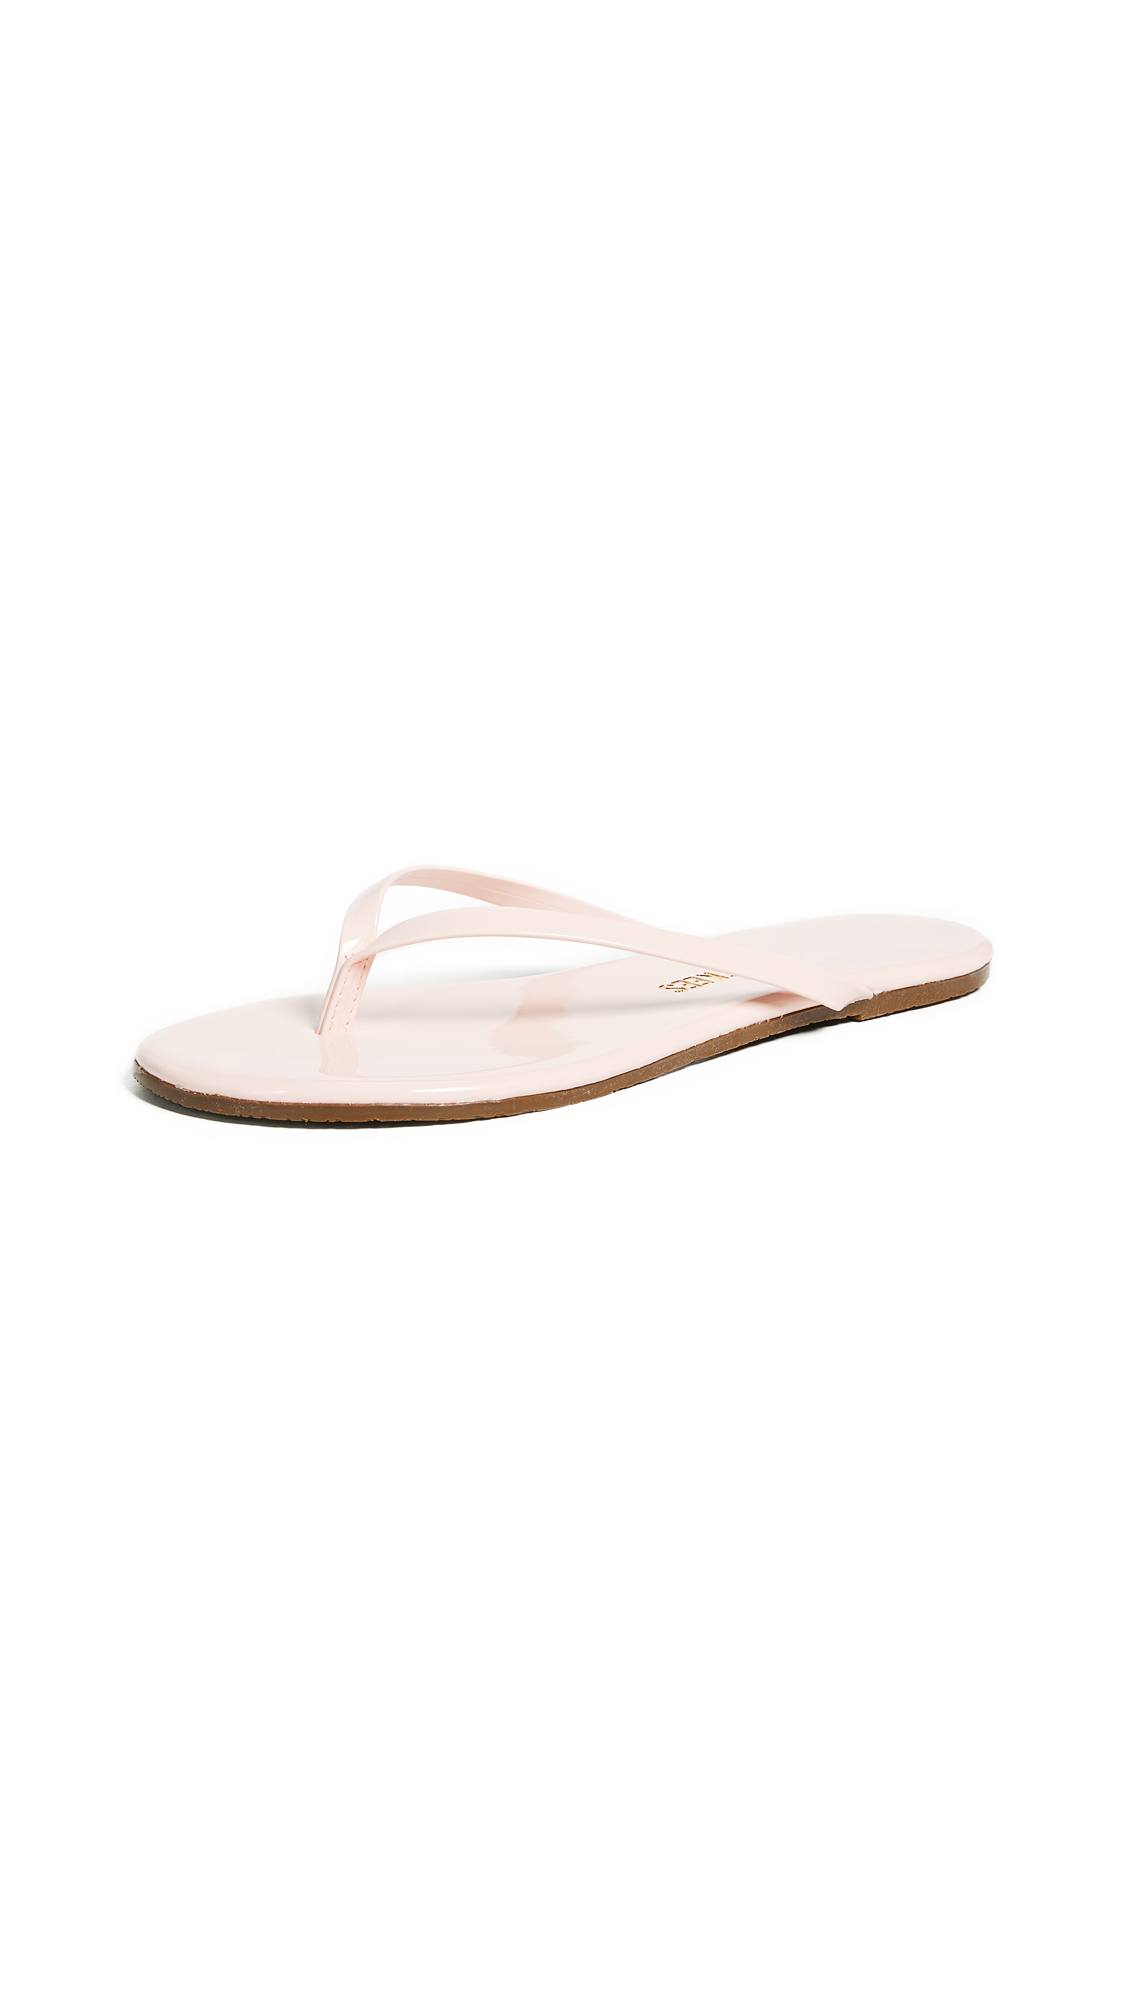 TKEES Glossy Flip Flops - Whip Cream